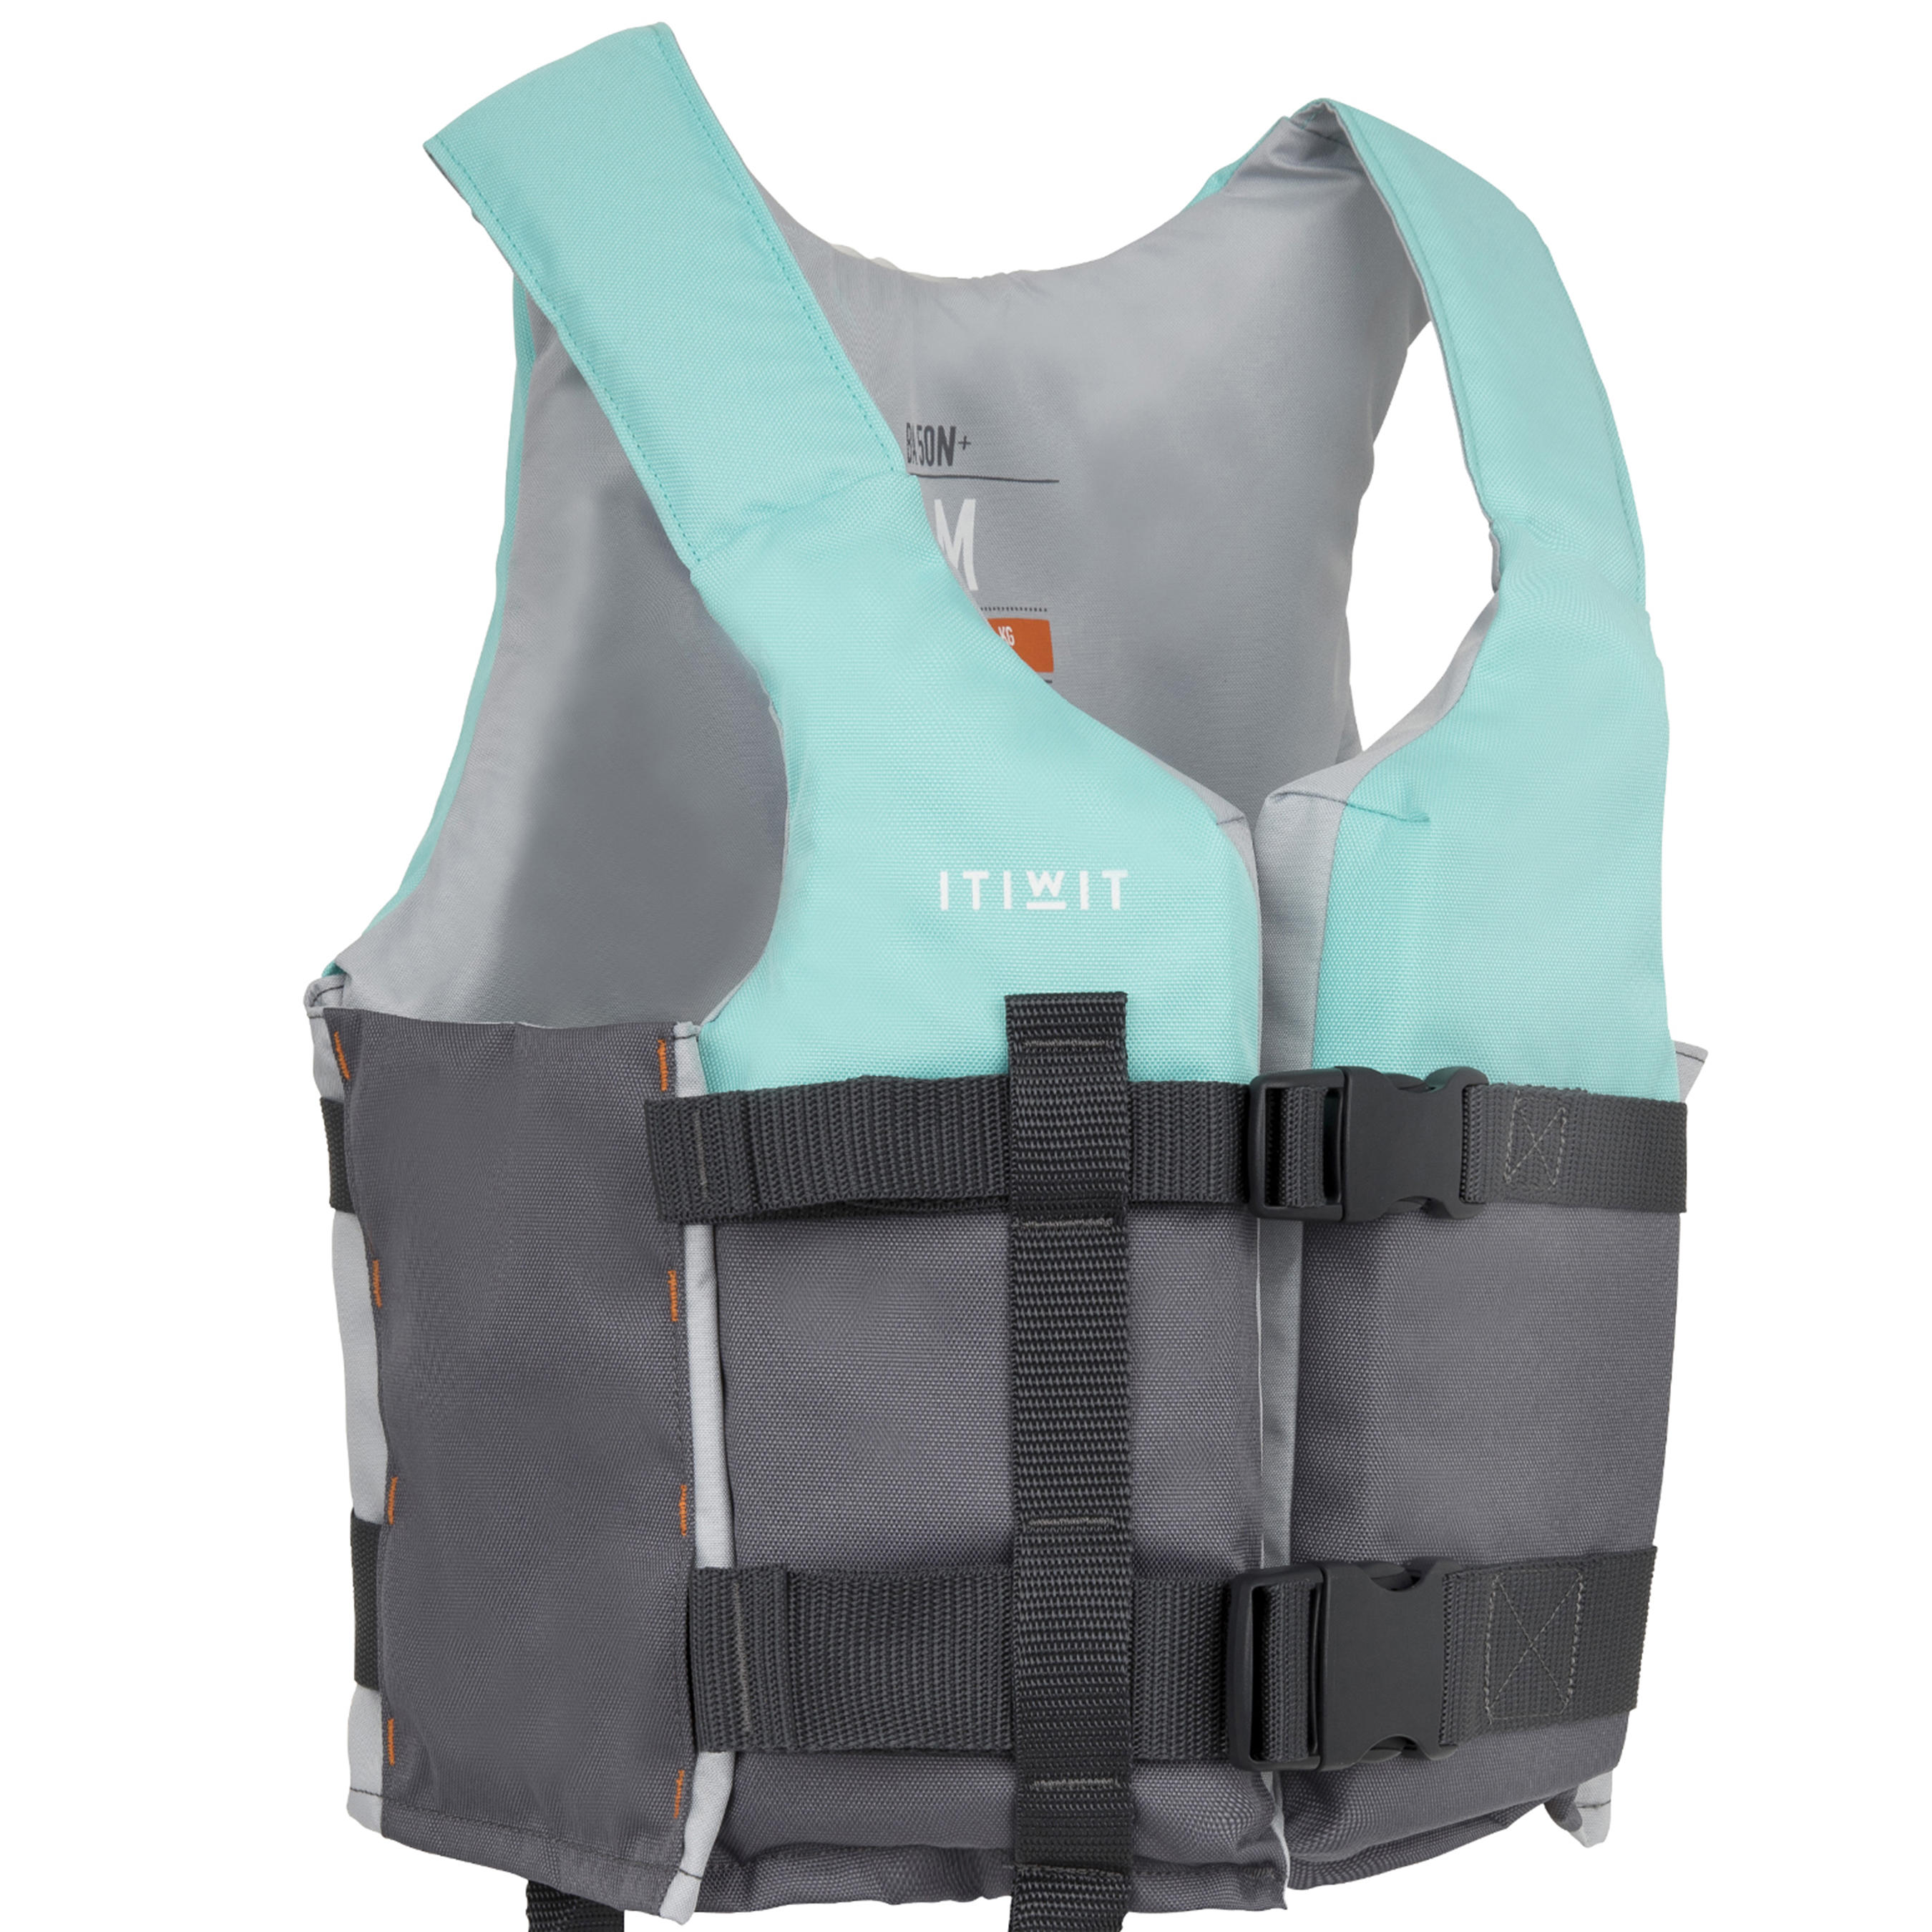 BA 50N+ Kayak, Stand-Up-Paddle and Dinghy BUOYANCY VEST blue